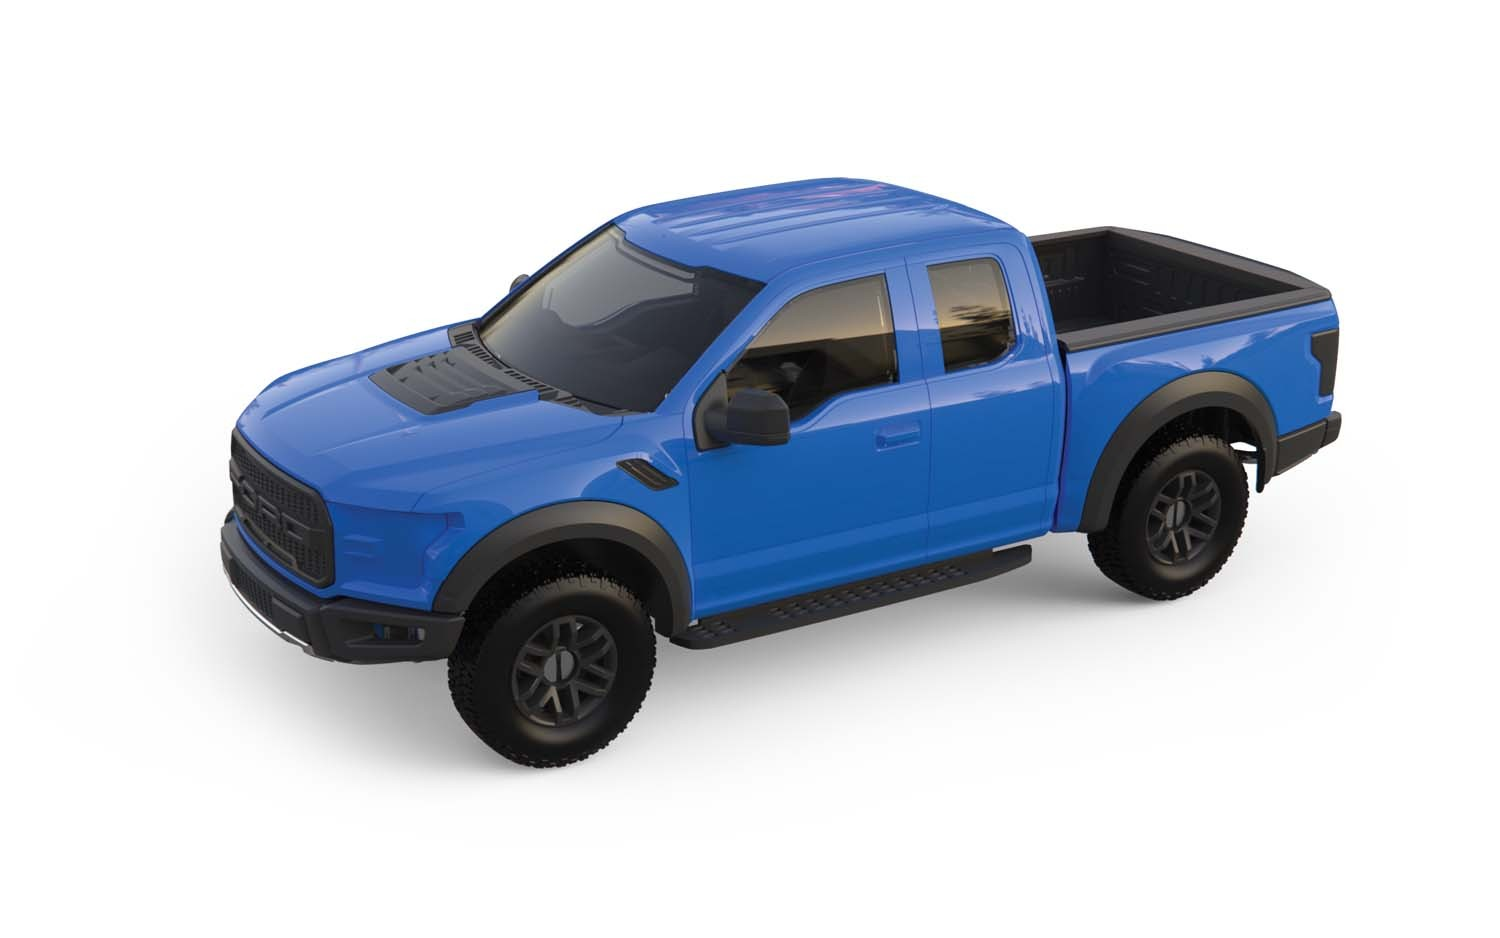 J6036 Airfix Quick Build Ford MustanJ6037 Airfix Quick Build Ford F-150 Raptorg GT